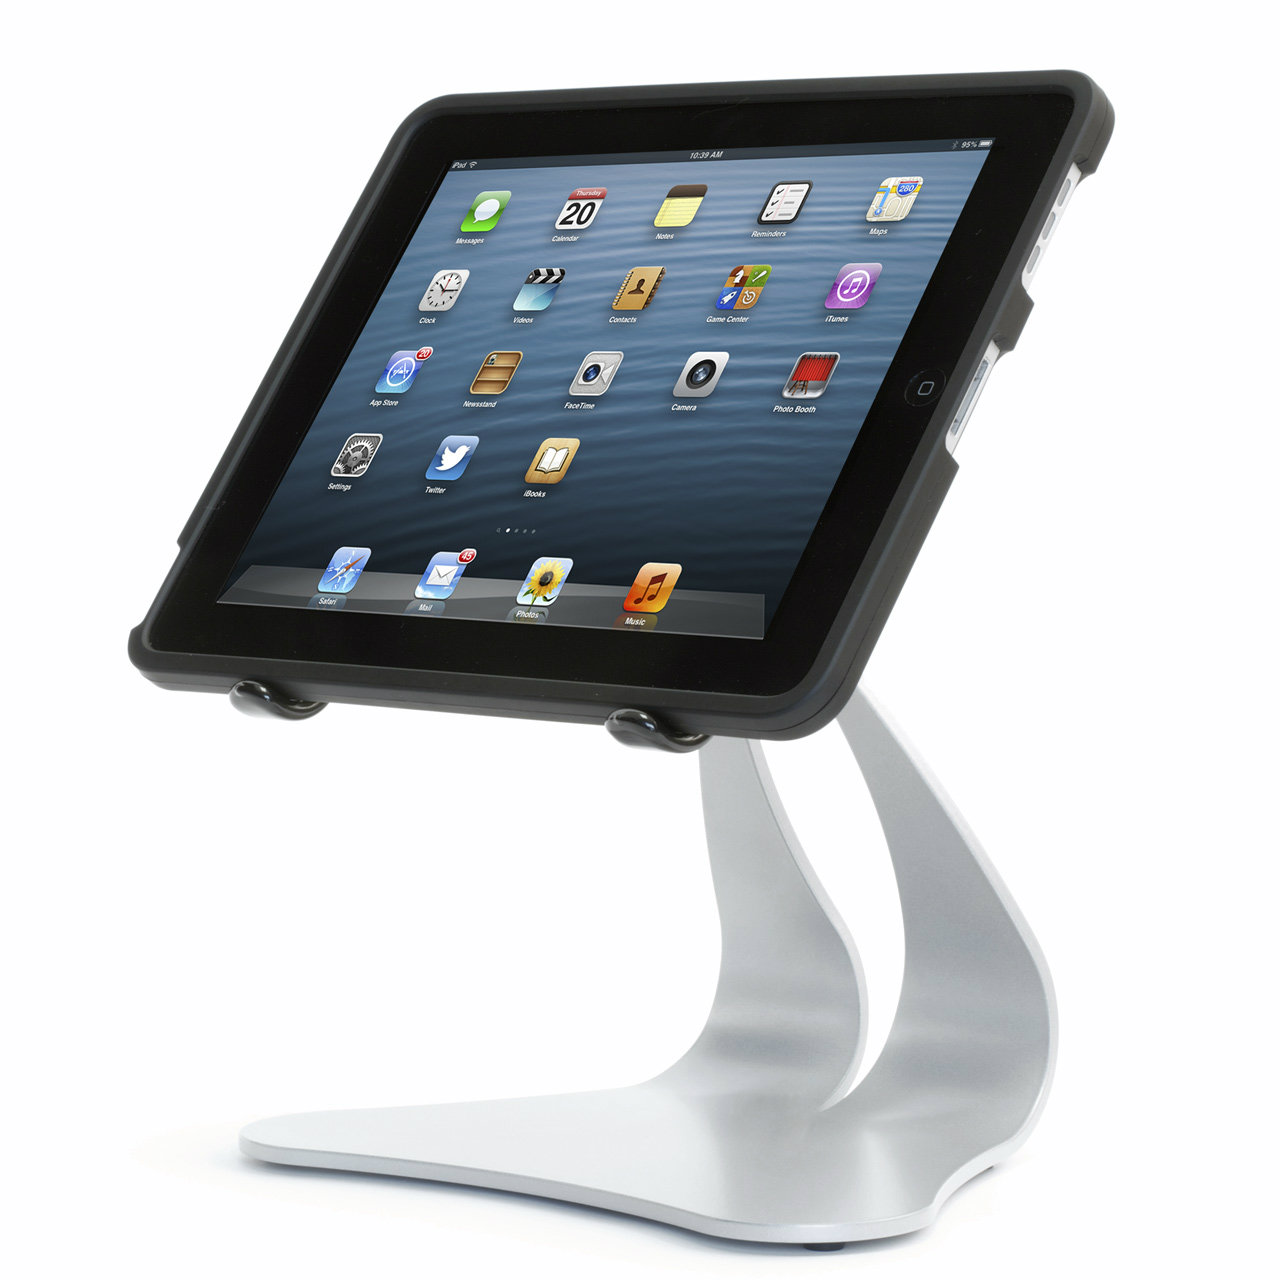 Ipad Pro Stand  Pivoting  Stabile Pro. Best Buy Desk Top Computers. Vibration Table. Braun Desk Clock. Dining Table With Bench. L Shaped Bunk Bed With Desk. Iron Drawer Handles. Old Roll Top Desk Value. Ebay Desks